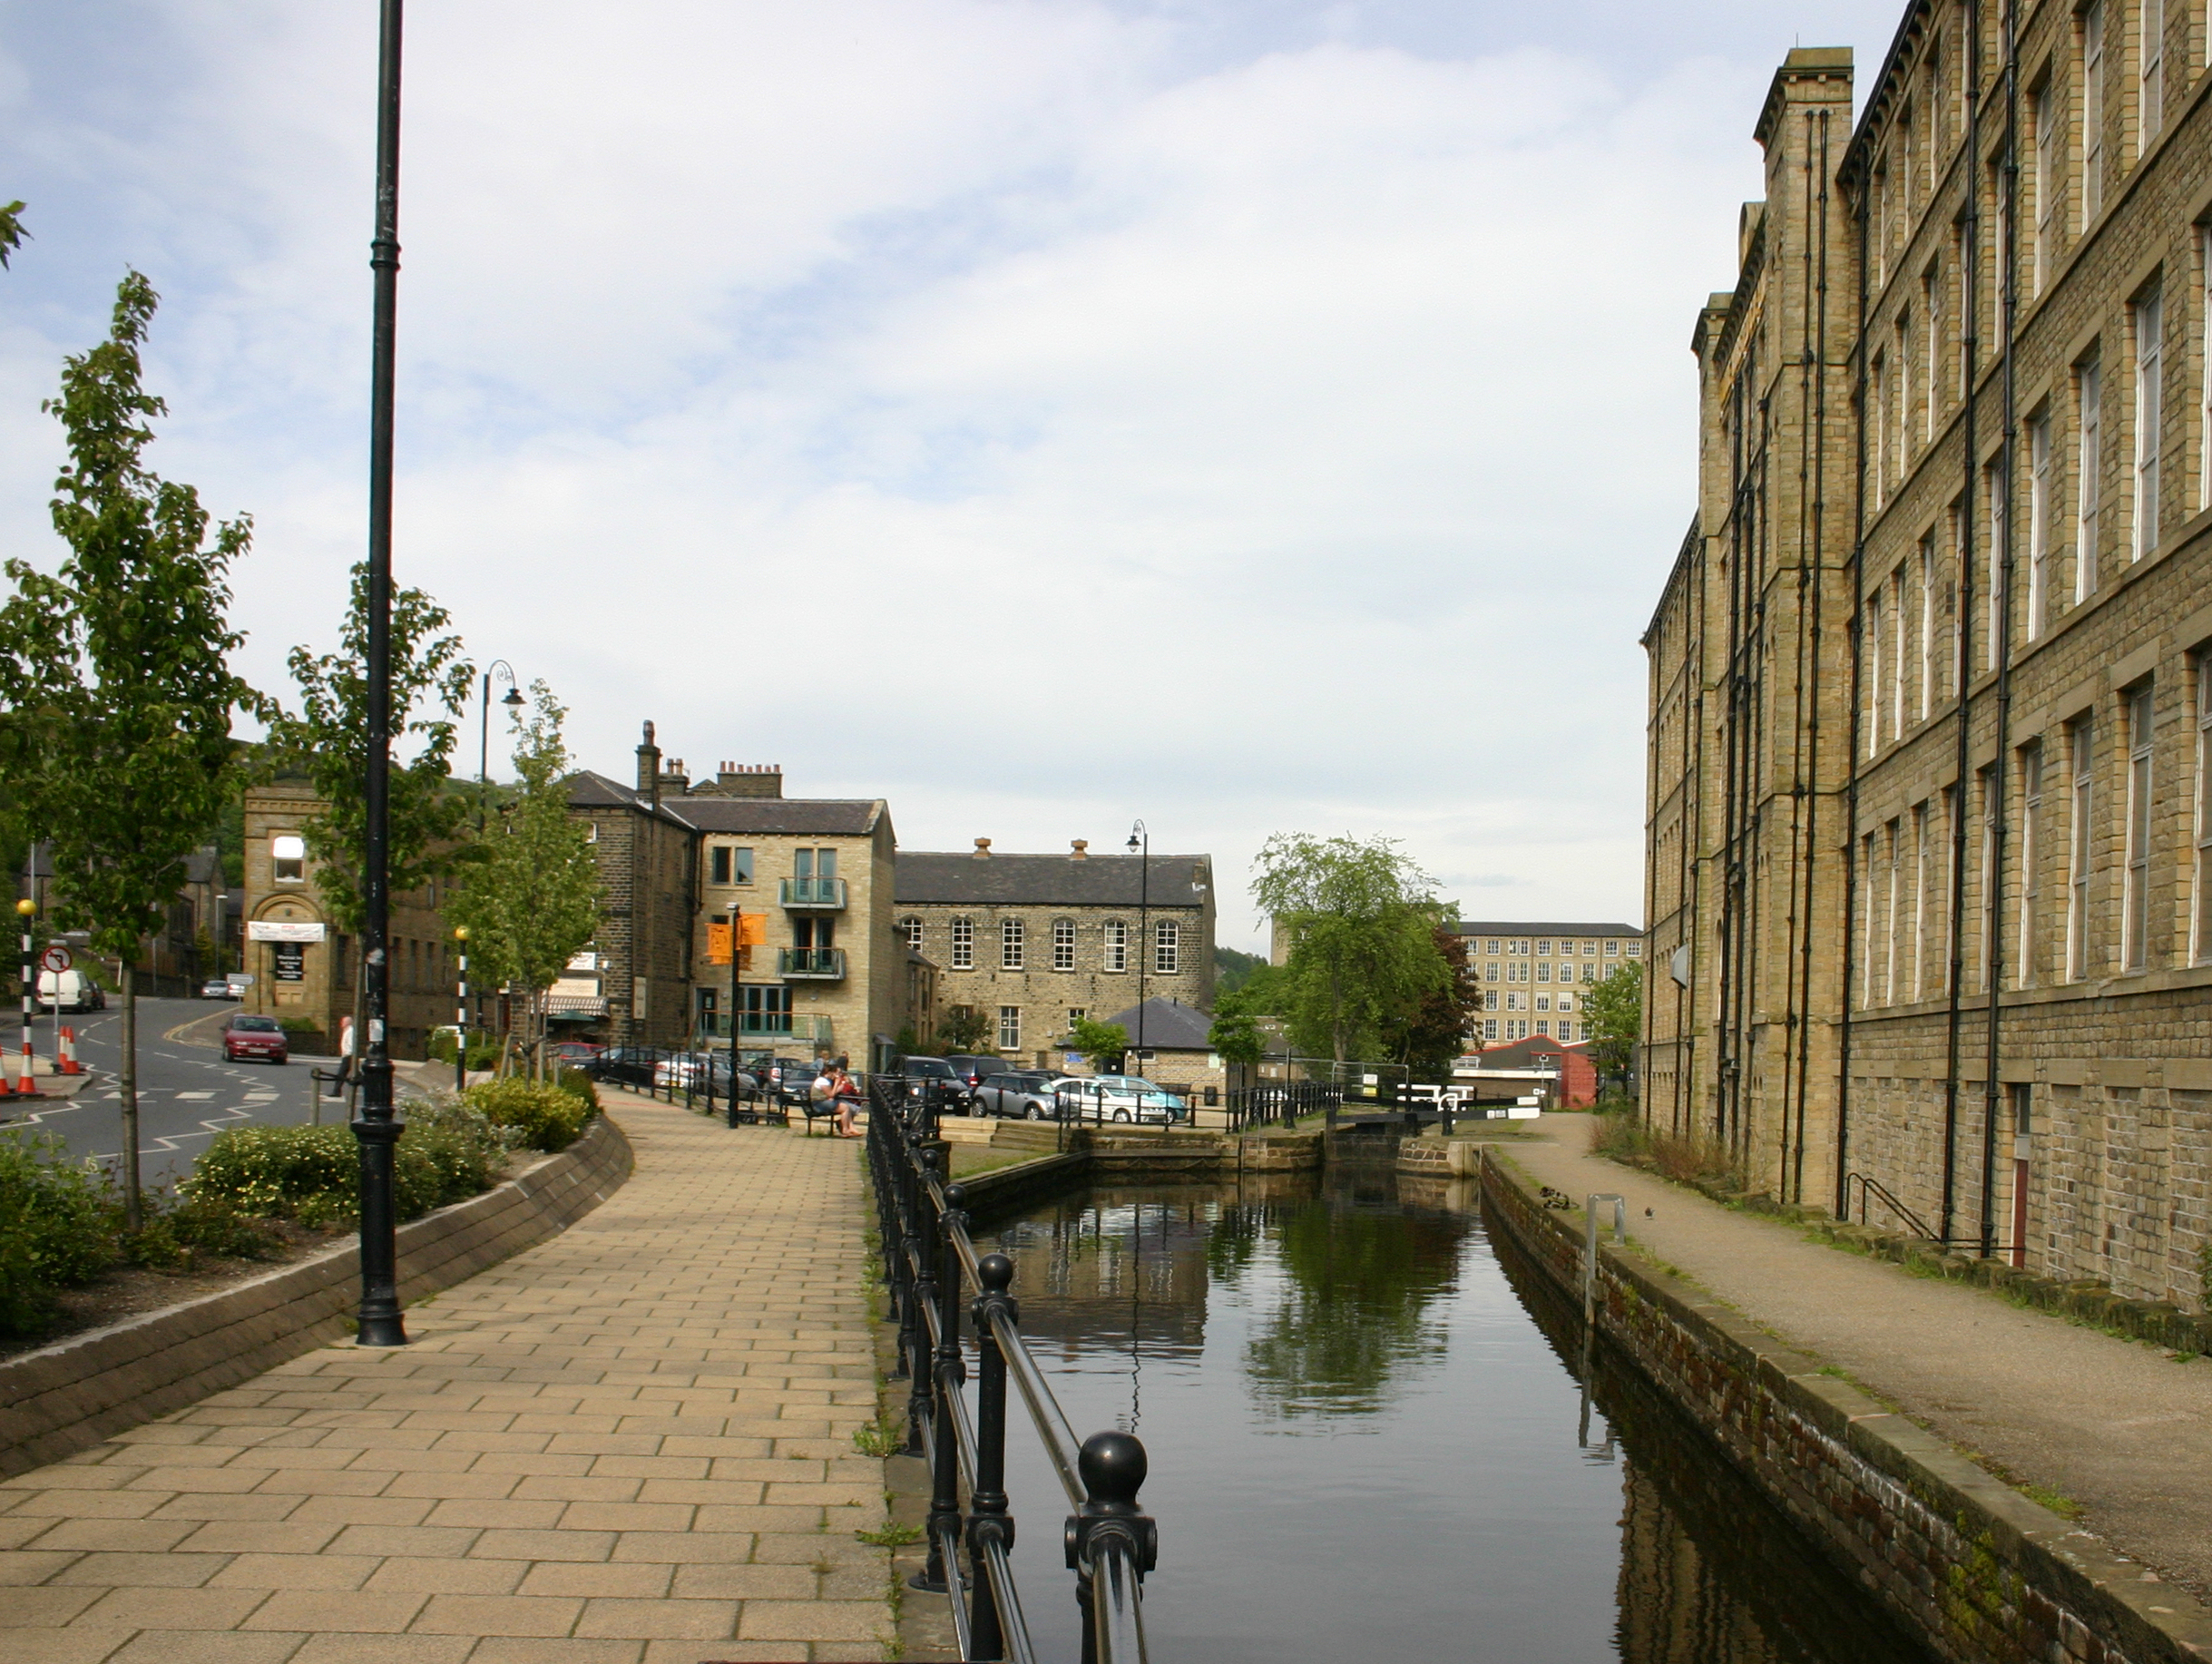 "<a href=""http://search.lycos.com/web/?_z=0&q=%22Huddersfield%20Narrow%20Canal%22"">Huddersfield Narrow Canal</a> at Slaithwaite"